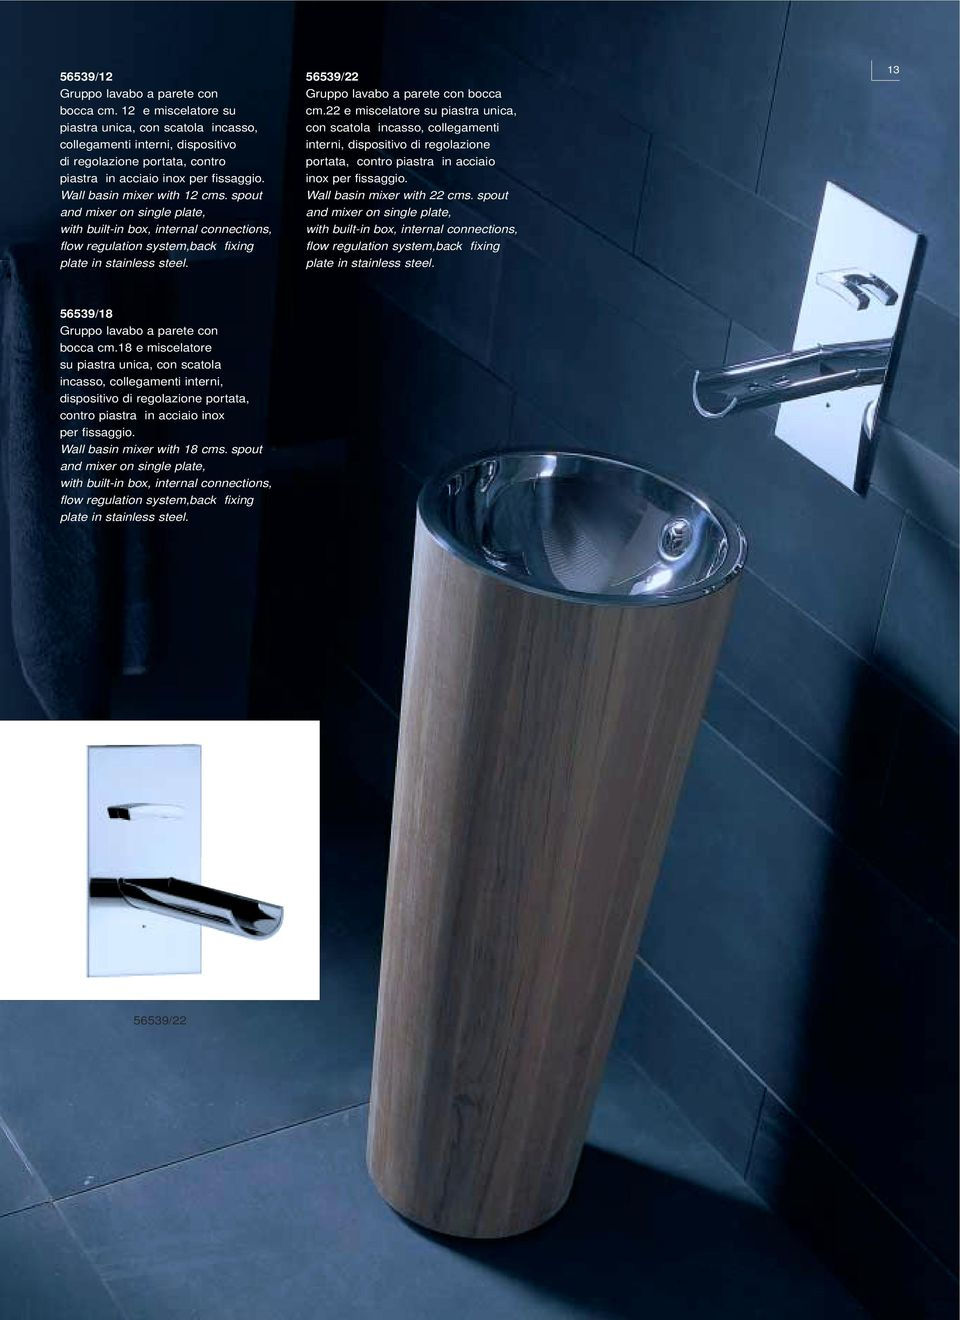 spout and mixer on single plate, with built-in box, internal connections, flow regulation system,back fixing plate in stainless steel. 56539/22 Gruppo lavabo a parete con bocca cm.